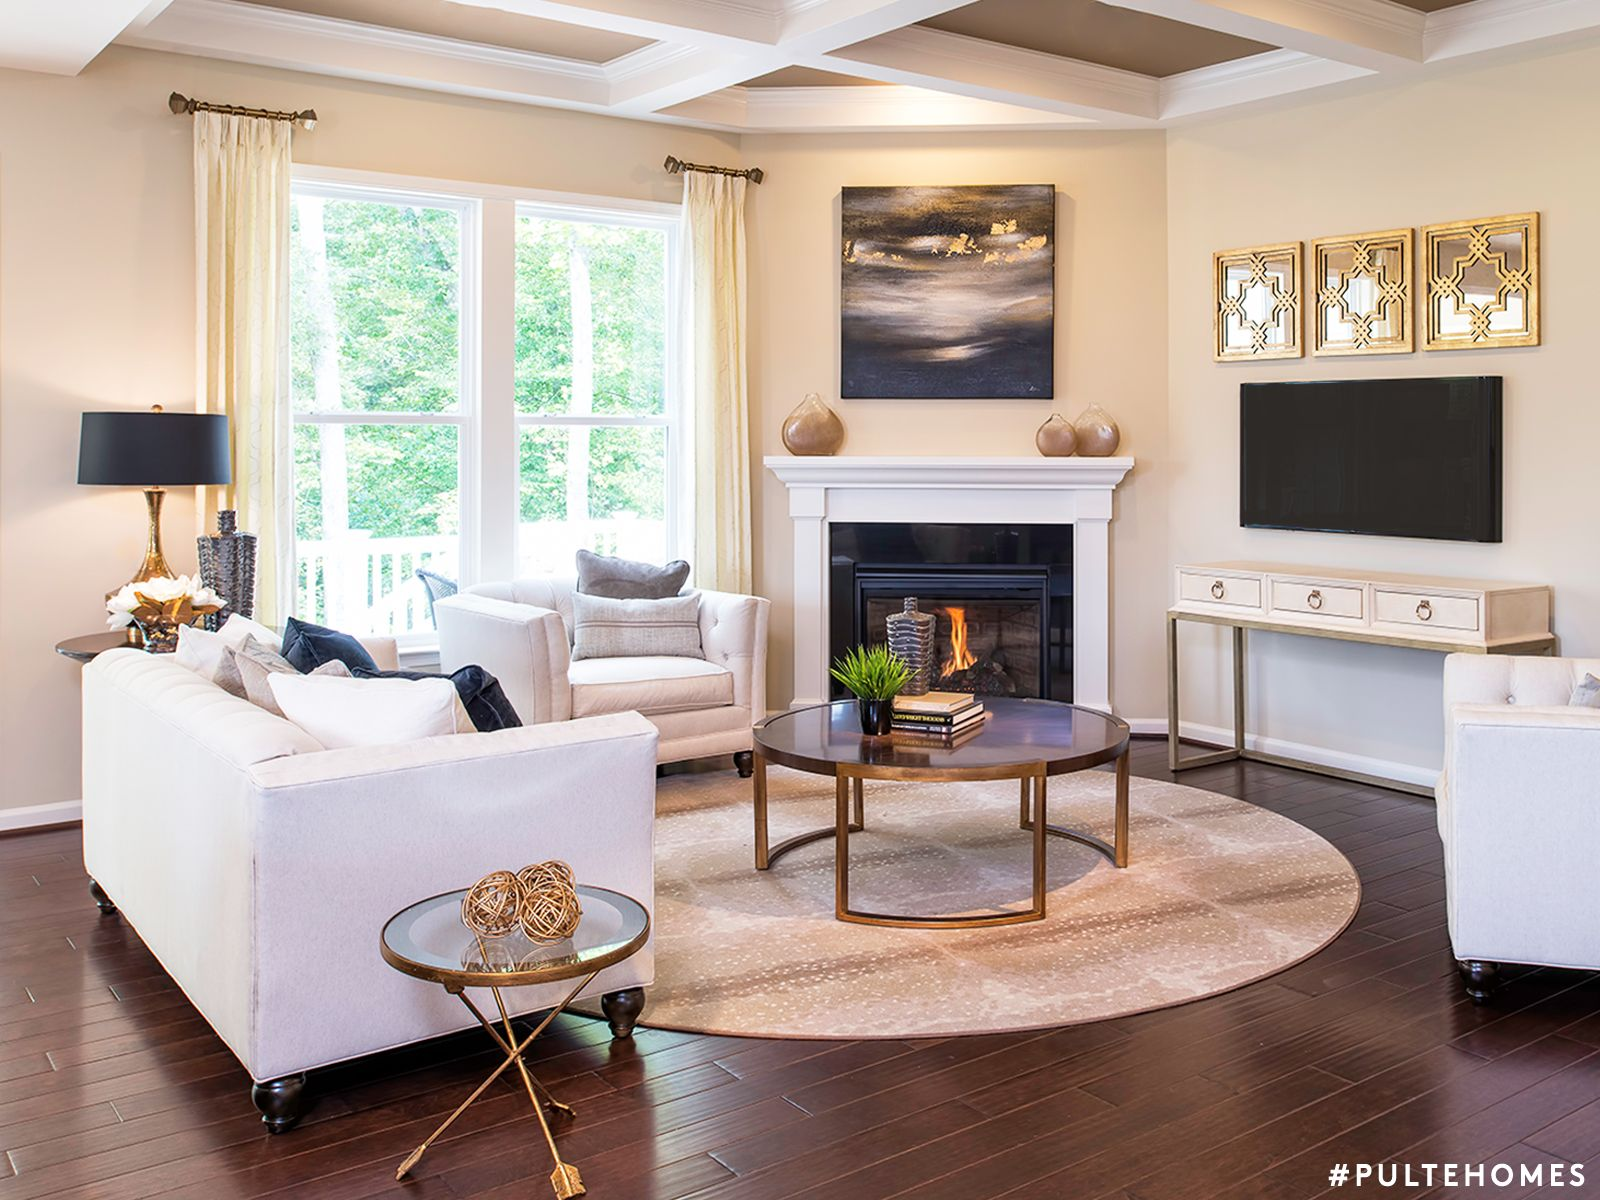 27+ Stunning Fireplace Tile Ideas for your Home   house ...